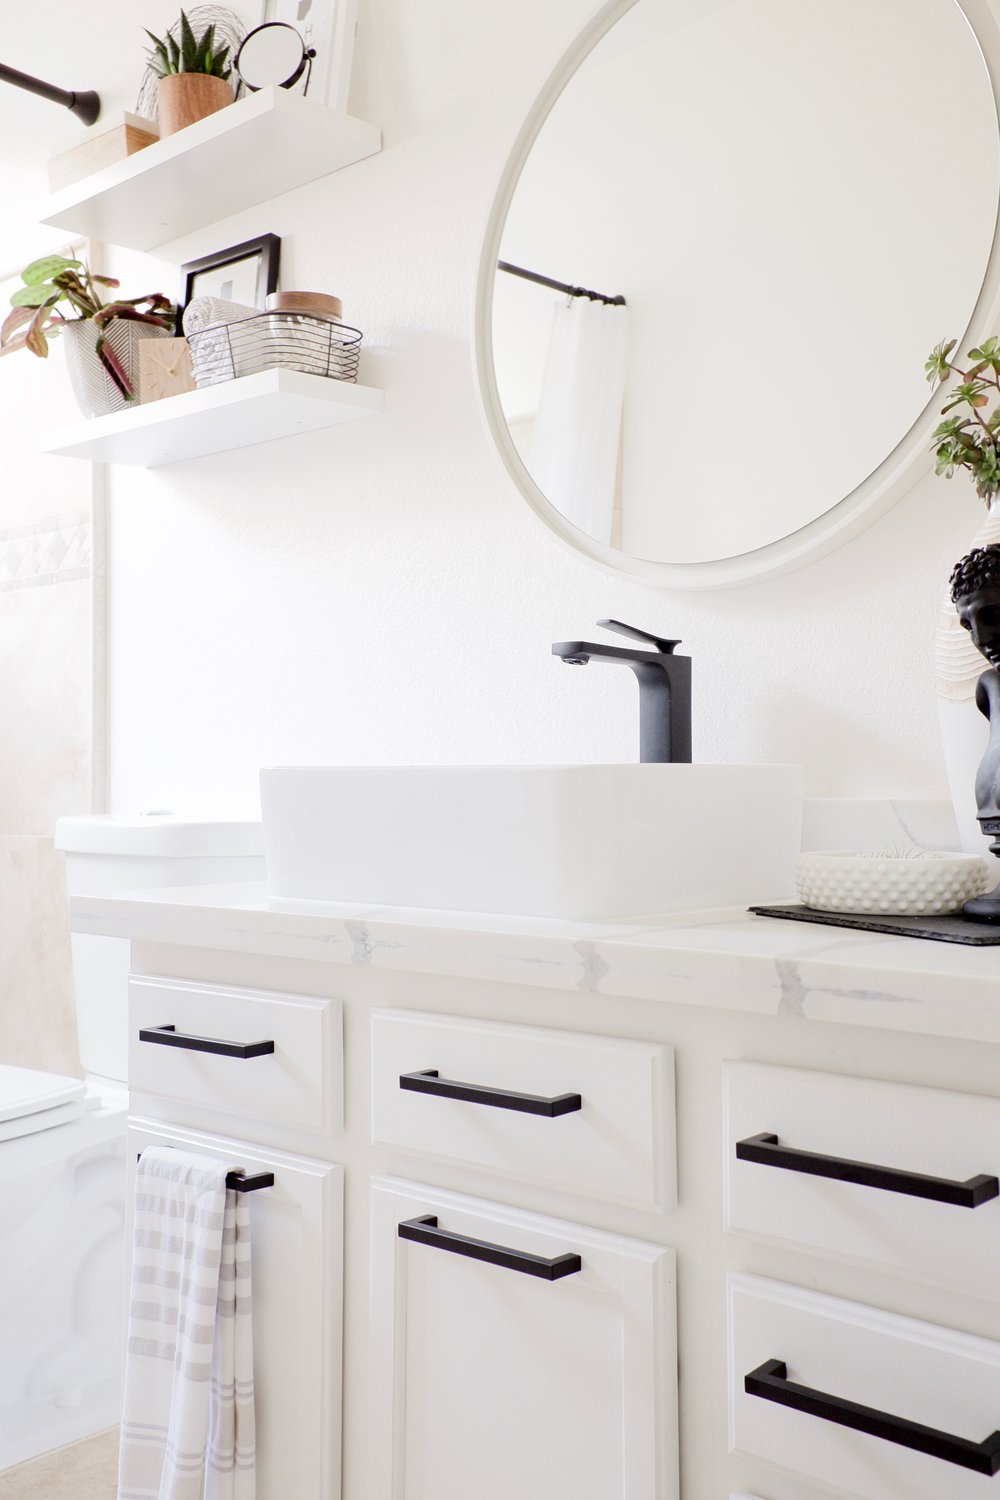 White cabinet with white round mirror and quartz counter, black fixtures